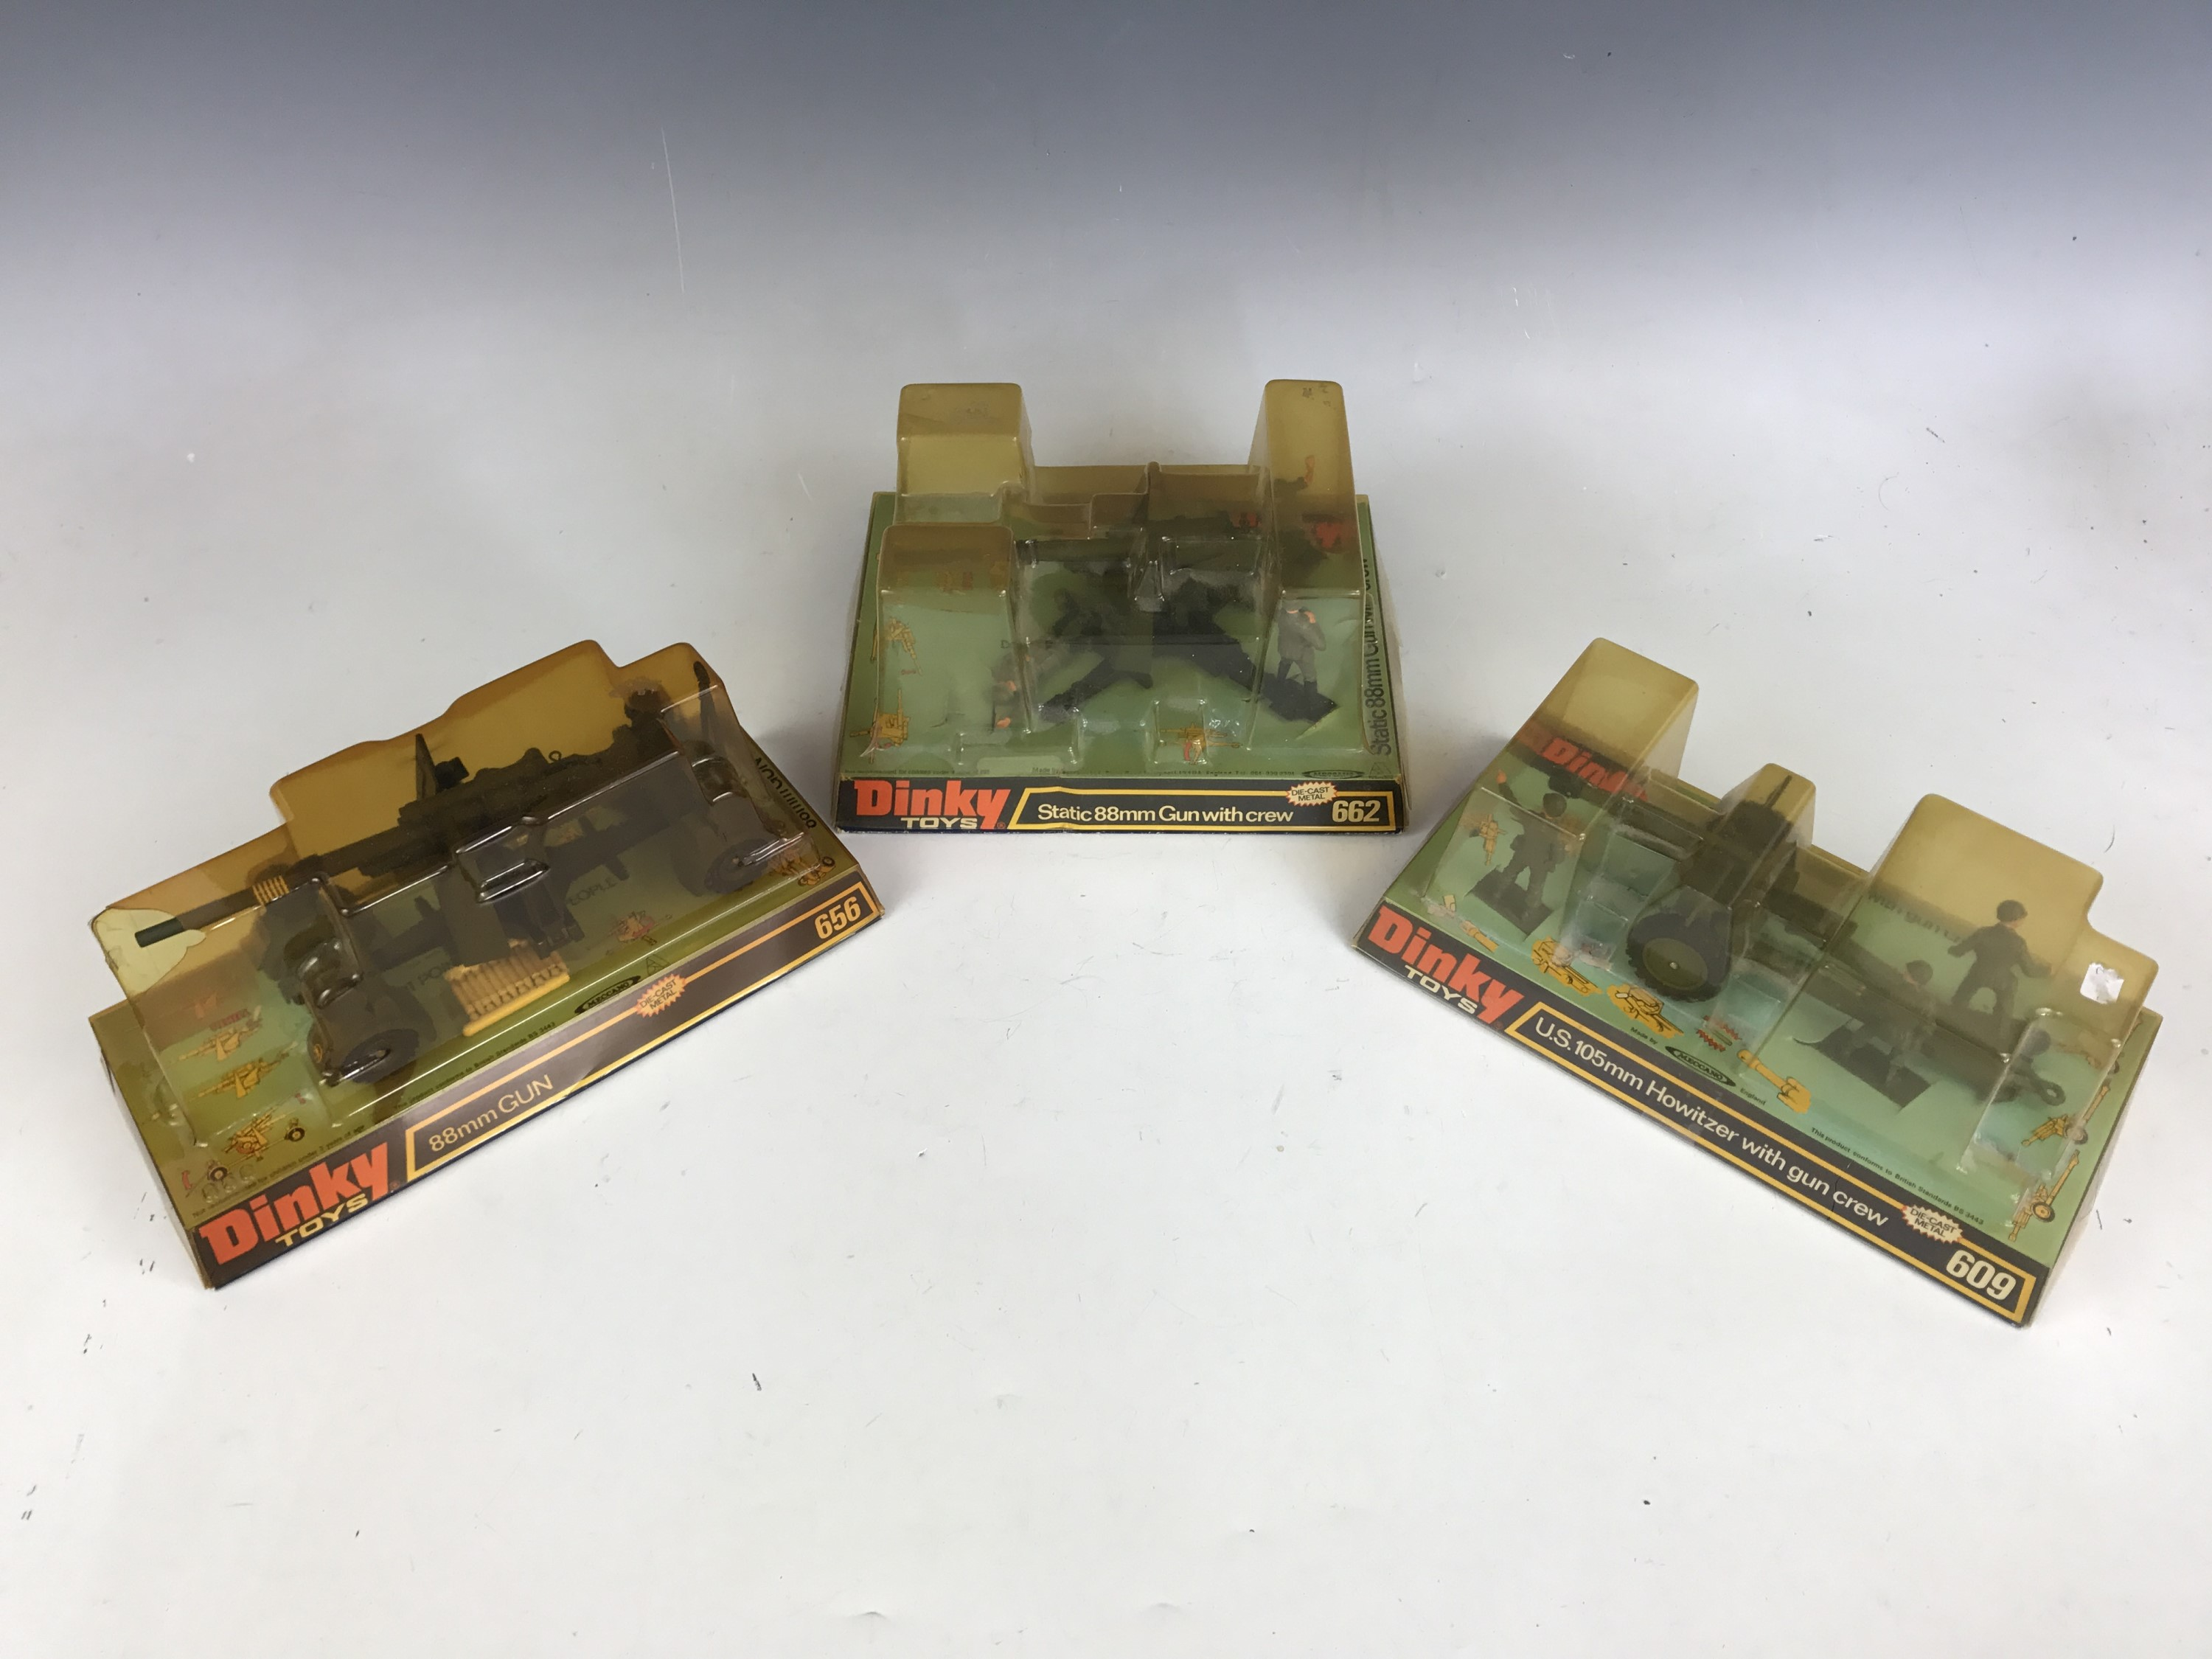 Lot 57 - Vintage military Dinky Toys, including 609 U.S.105mm Howitzer with gun crew, 656 88mm GUN and 662